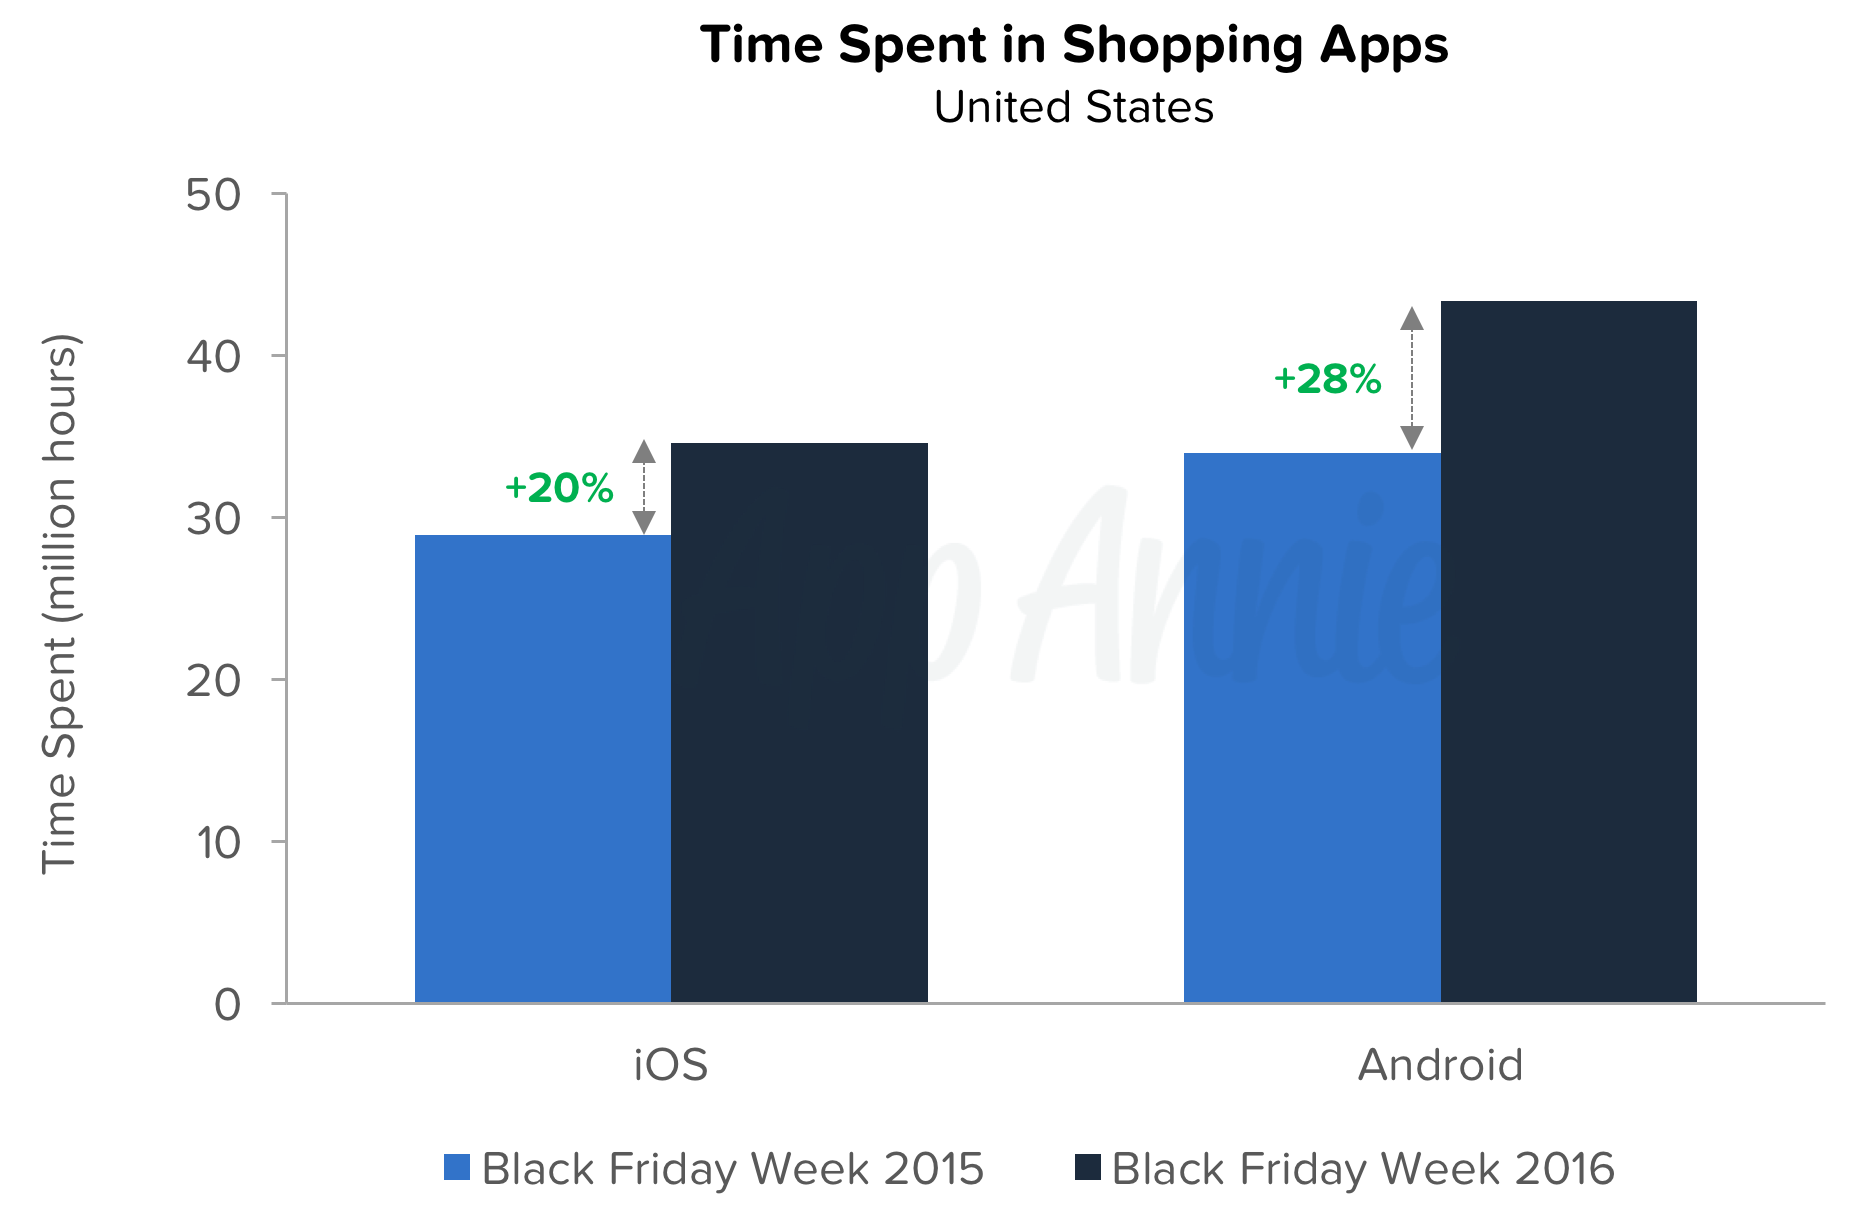 time-spent-shopping-apps-ios-andrid-black-friday